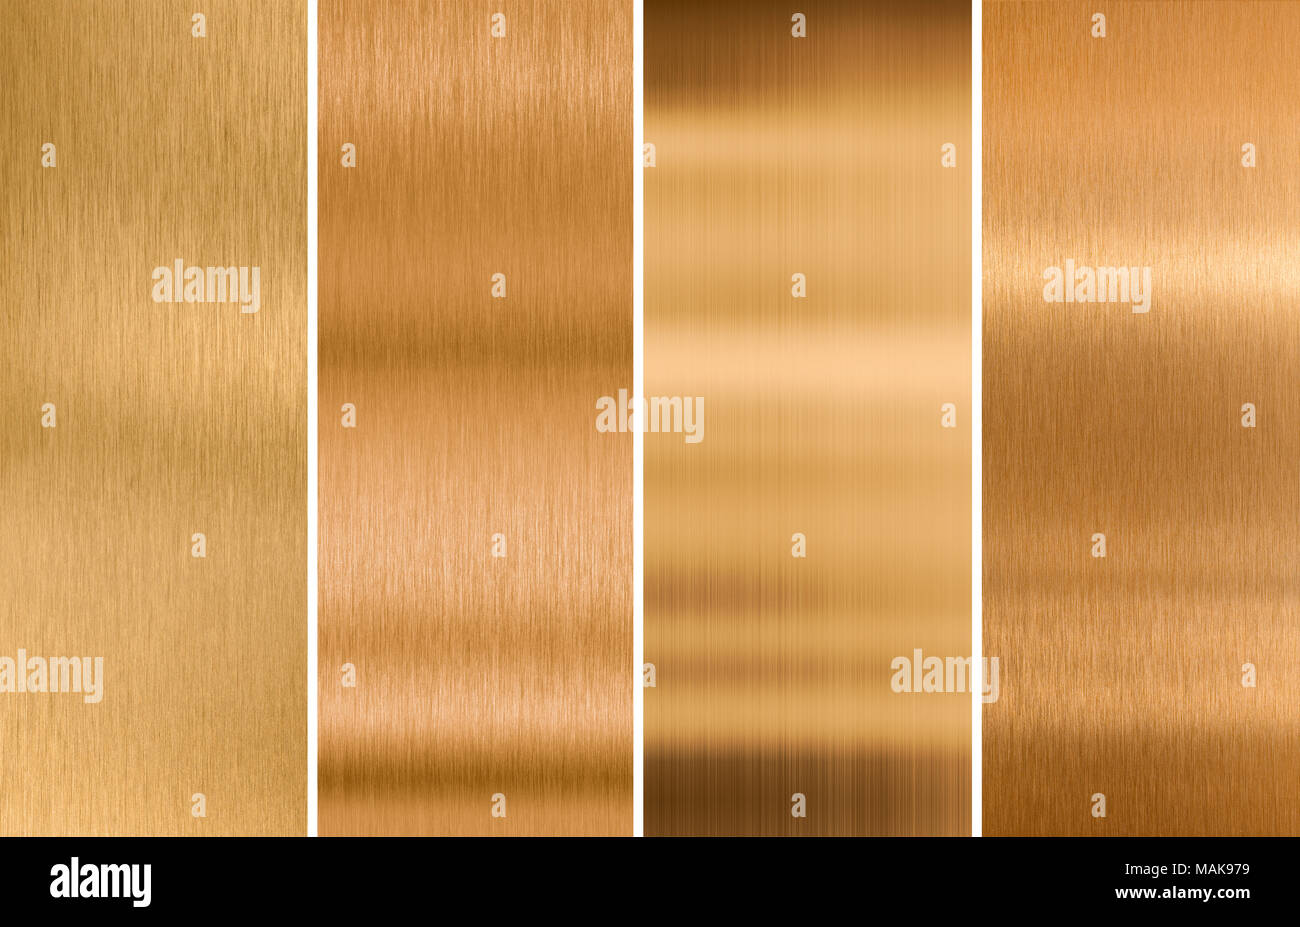 Copper Effect Stock Photos & Copper Effect Stock Images - Alamy